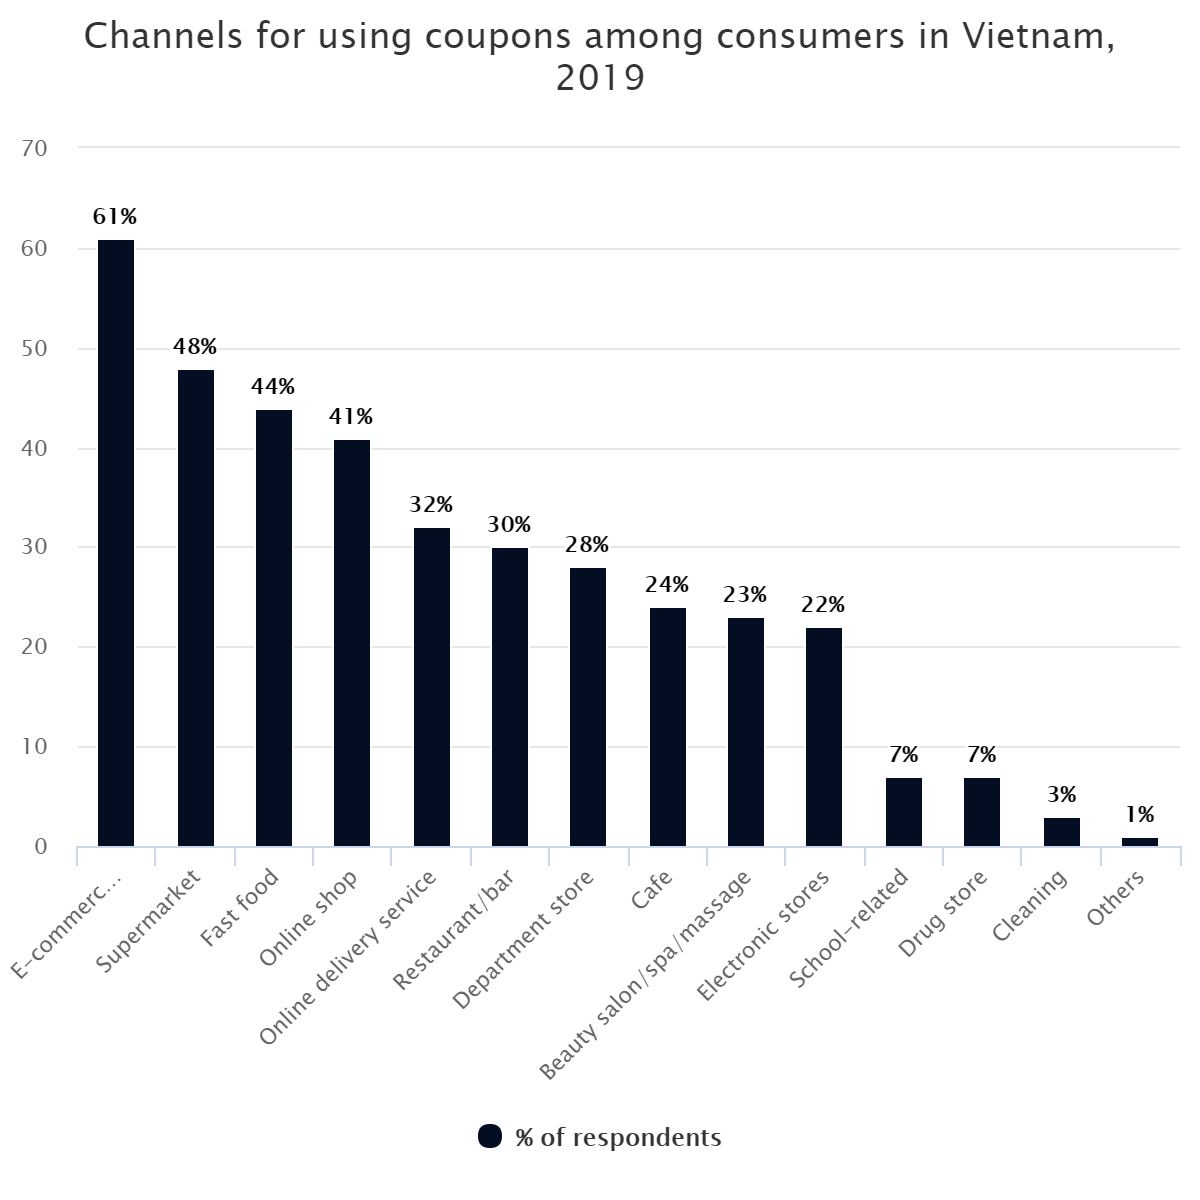 Channels for using coupons among consumers in Vietnam, 2019